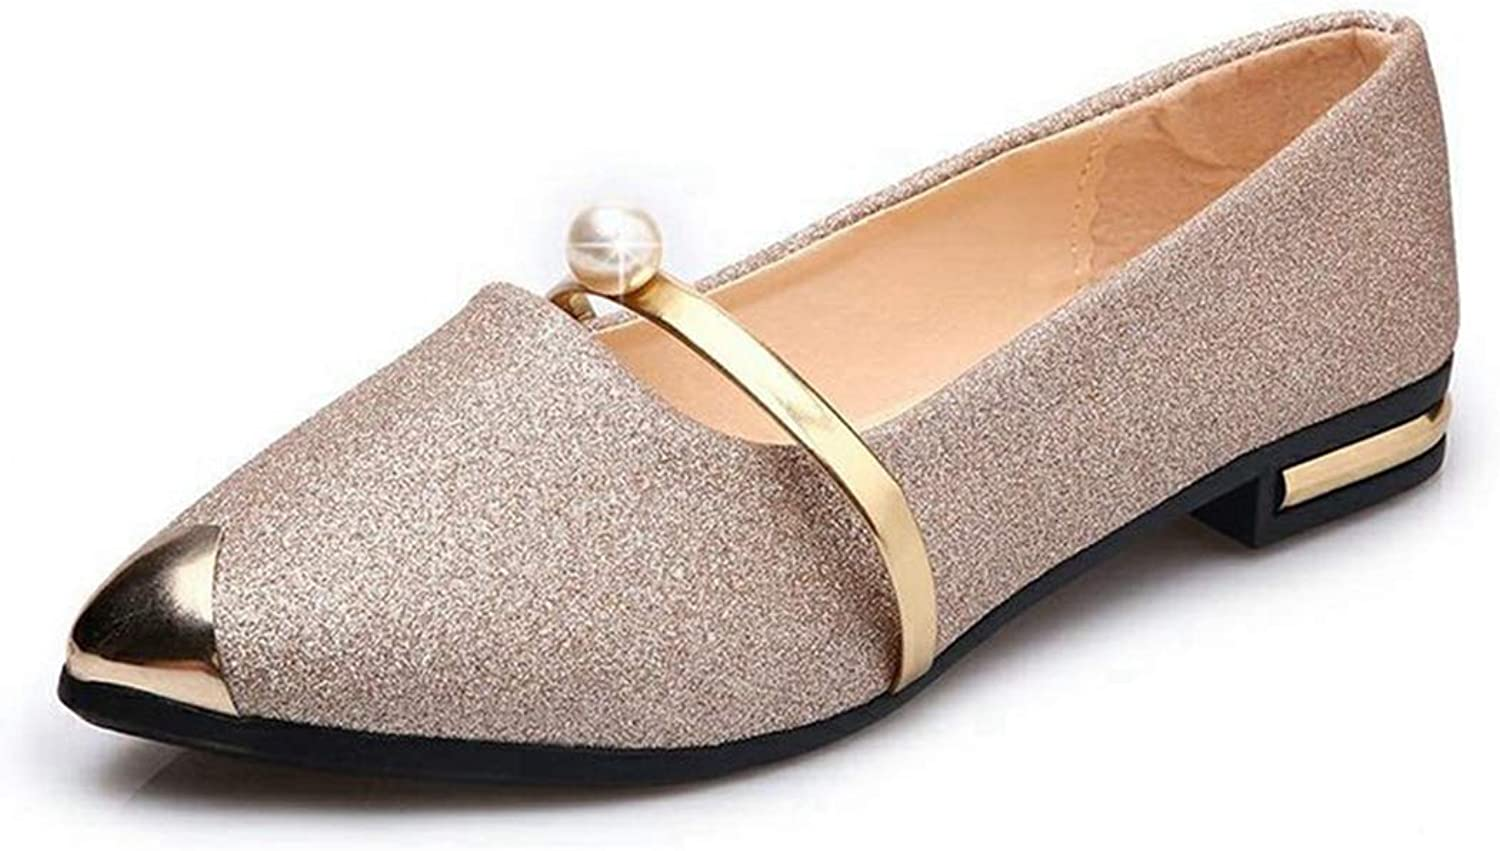 Drew Toby Women's Flats,Stylish Sequin Comfortable gold Silver Four Seasons shoes